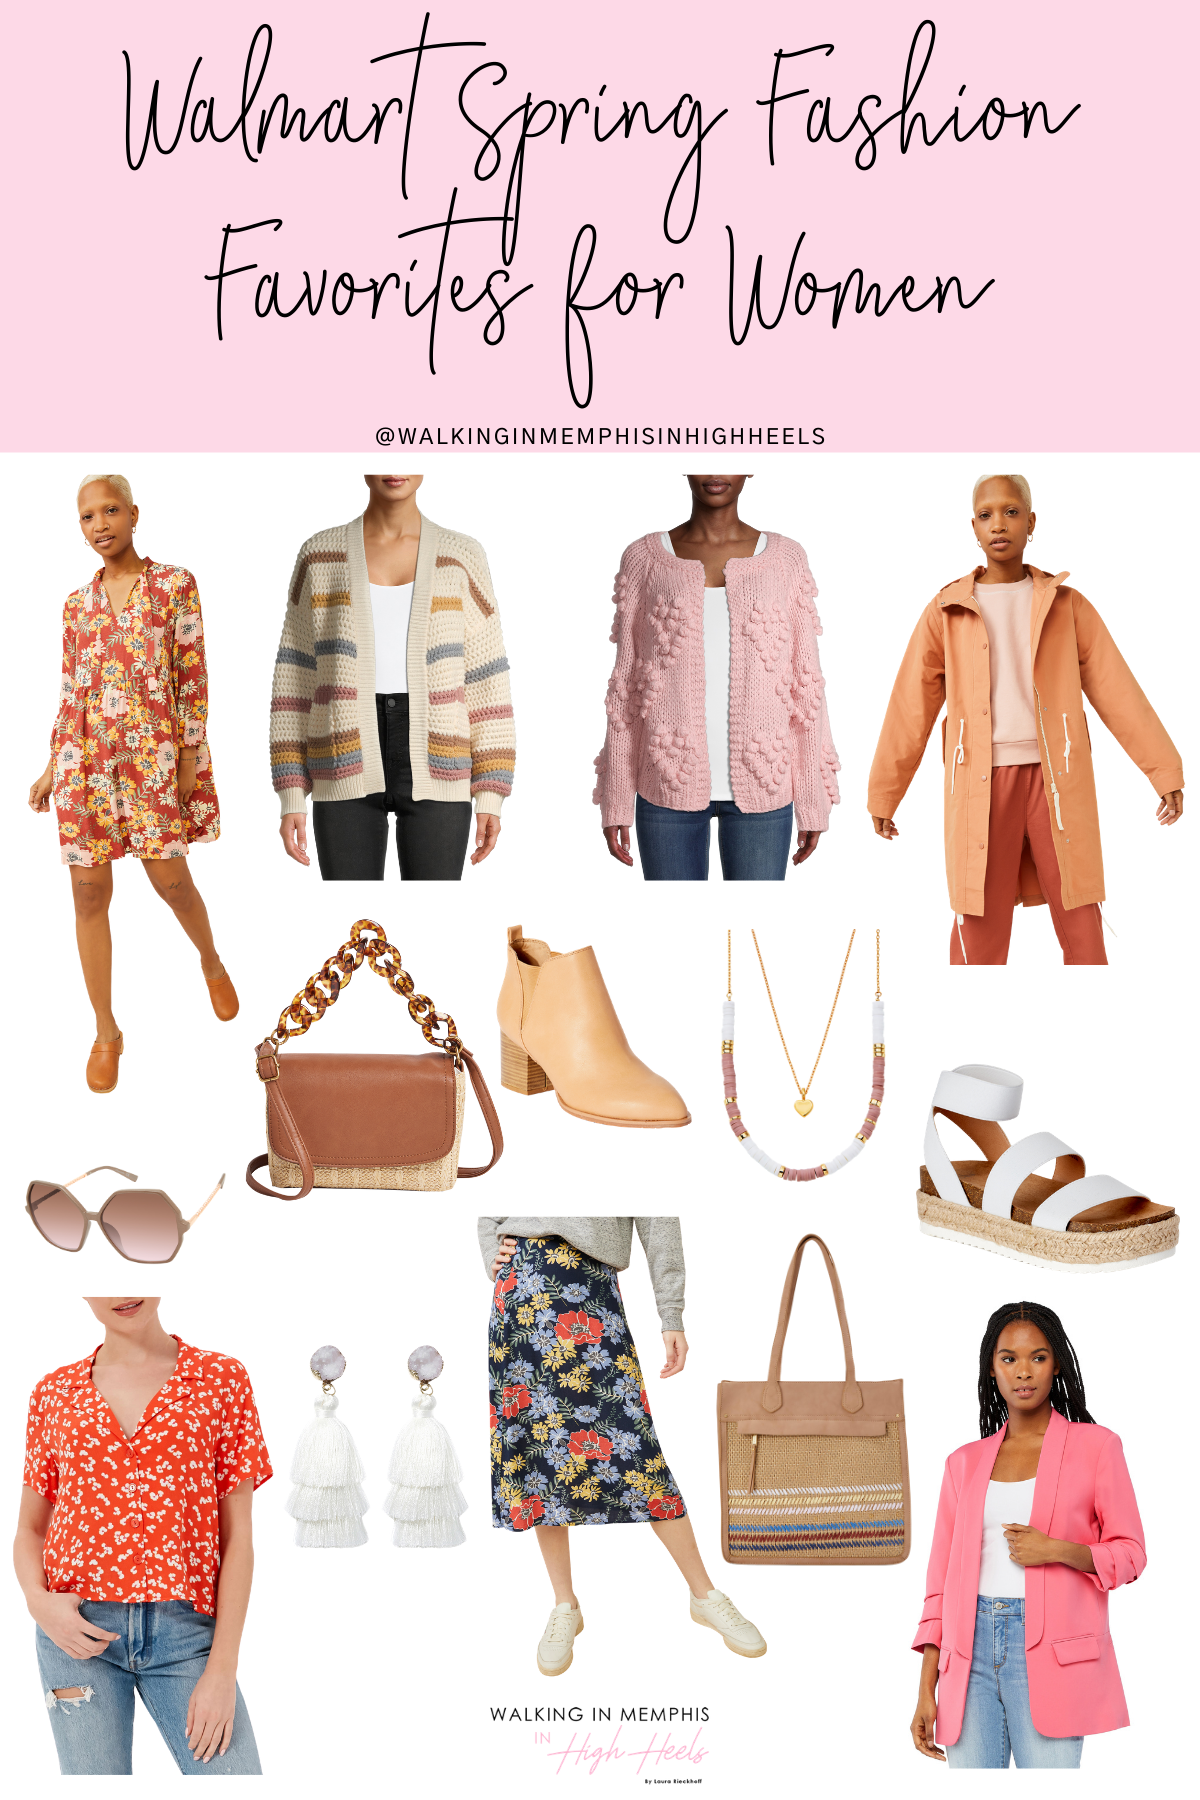 Walmart Spring Fashion Essentials for Women featured by top Memphis fashion blogger, Walking in Memphis in High Heels.